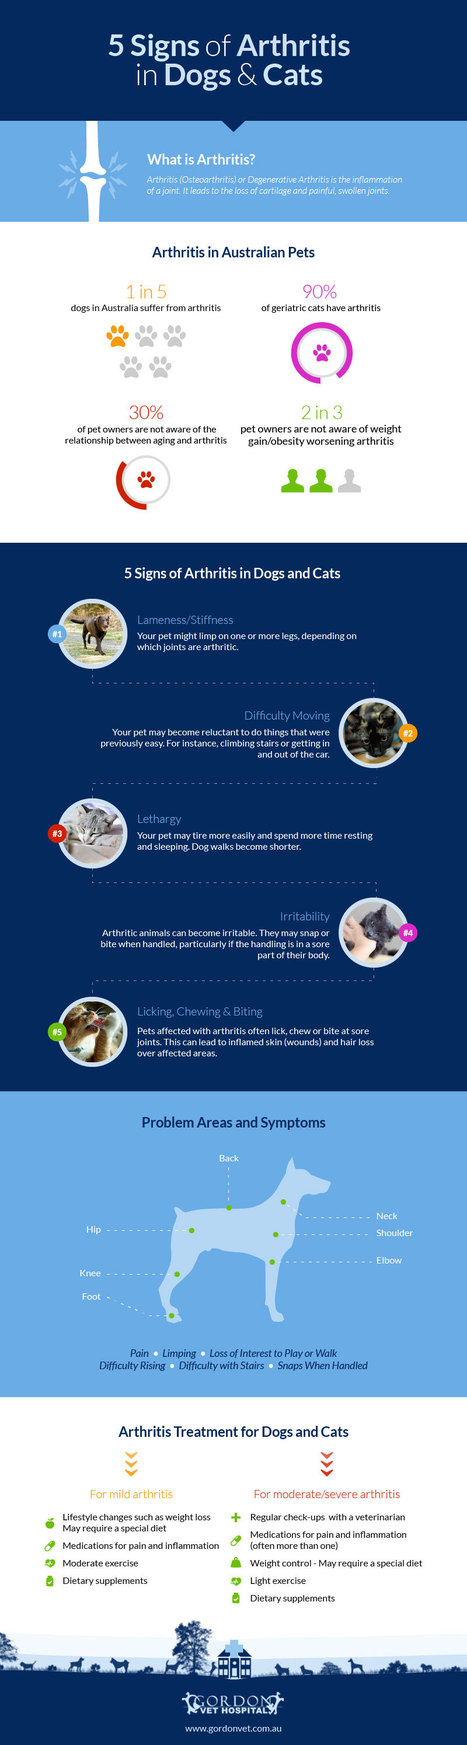 5 Signs of Arthritis in Dogs and Cats – Infographic | Visual.ly | Infographics for better understanding | Scoop.it